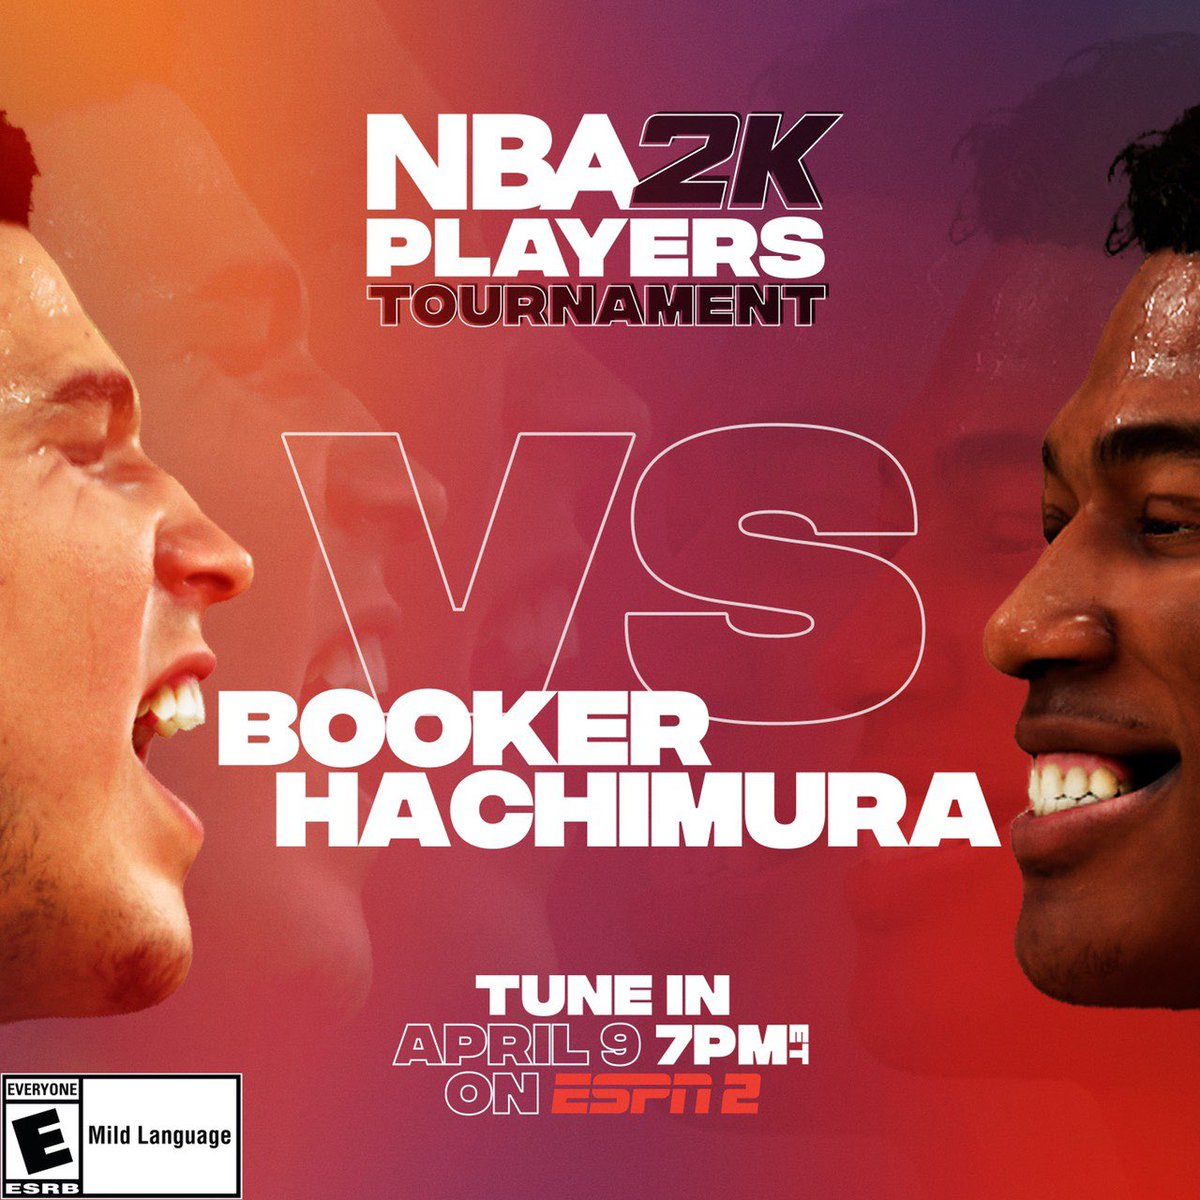 LETS GO! Made it to the Quarter-Finals in the #NBA2KTourney ❗️Tune in tonight at 7pm ET on ESPN2 https://t.co/2ZAMwlsMhA